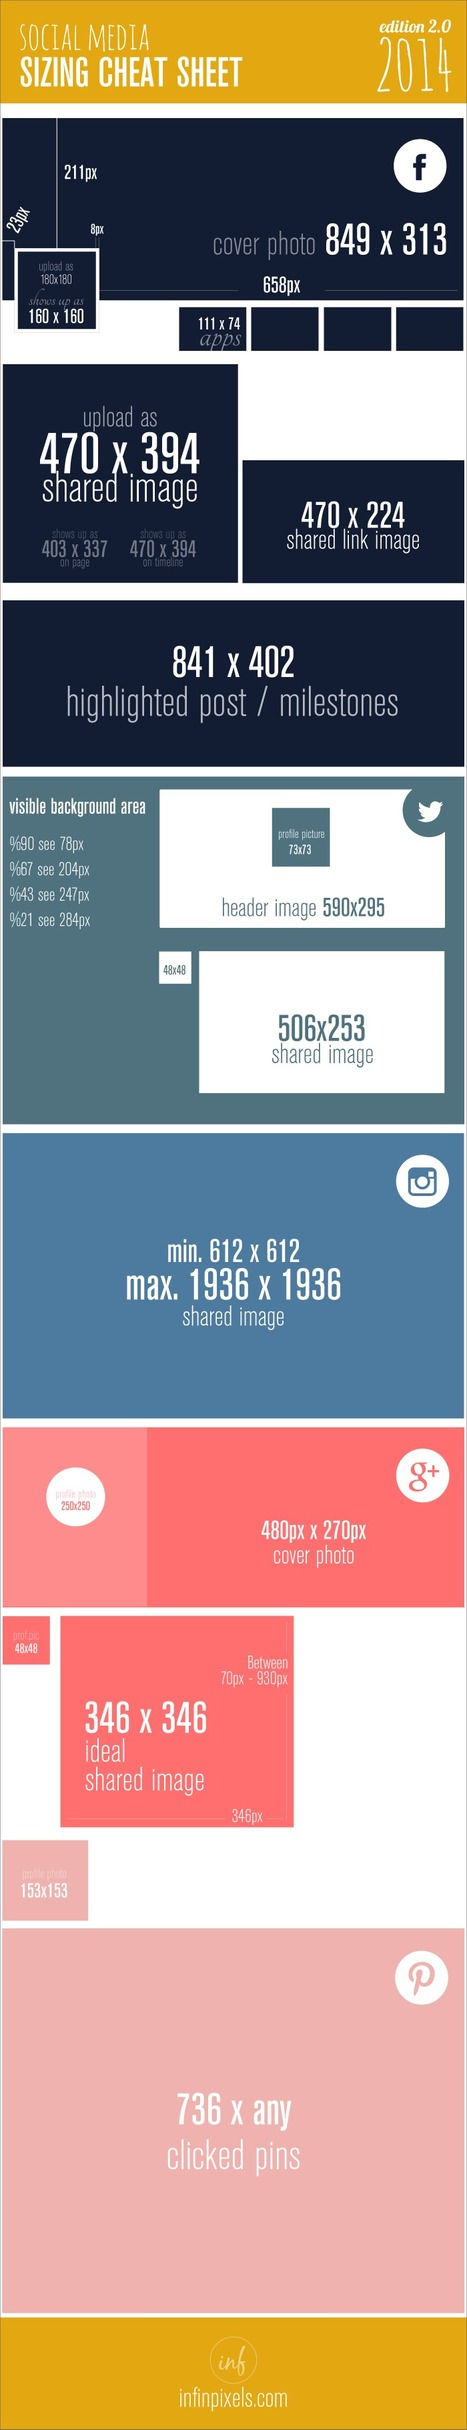 Facebook, Twitter, Instagram, Google+, Pinterest – Social Media Image Cheat Sheet 2014  #INFOGRAPHIC | MarketingHits | Scoop.it